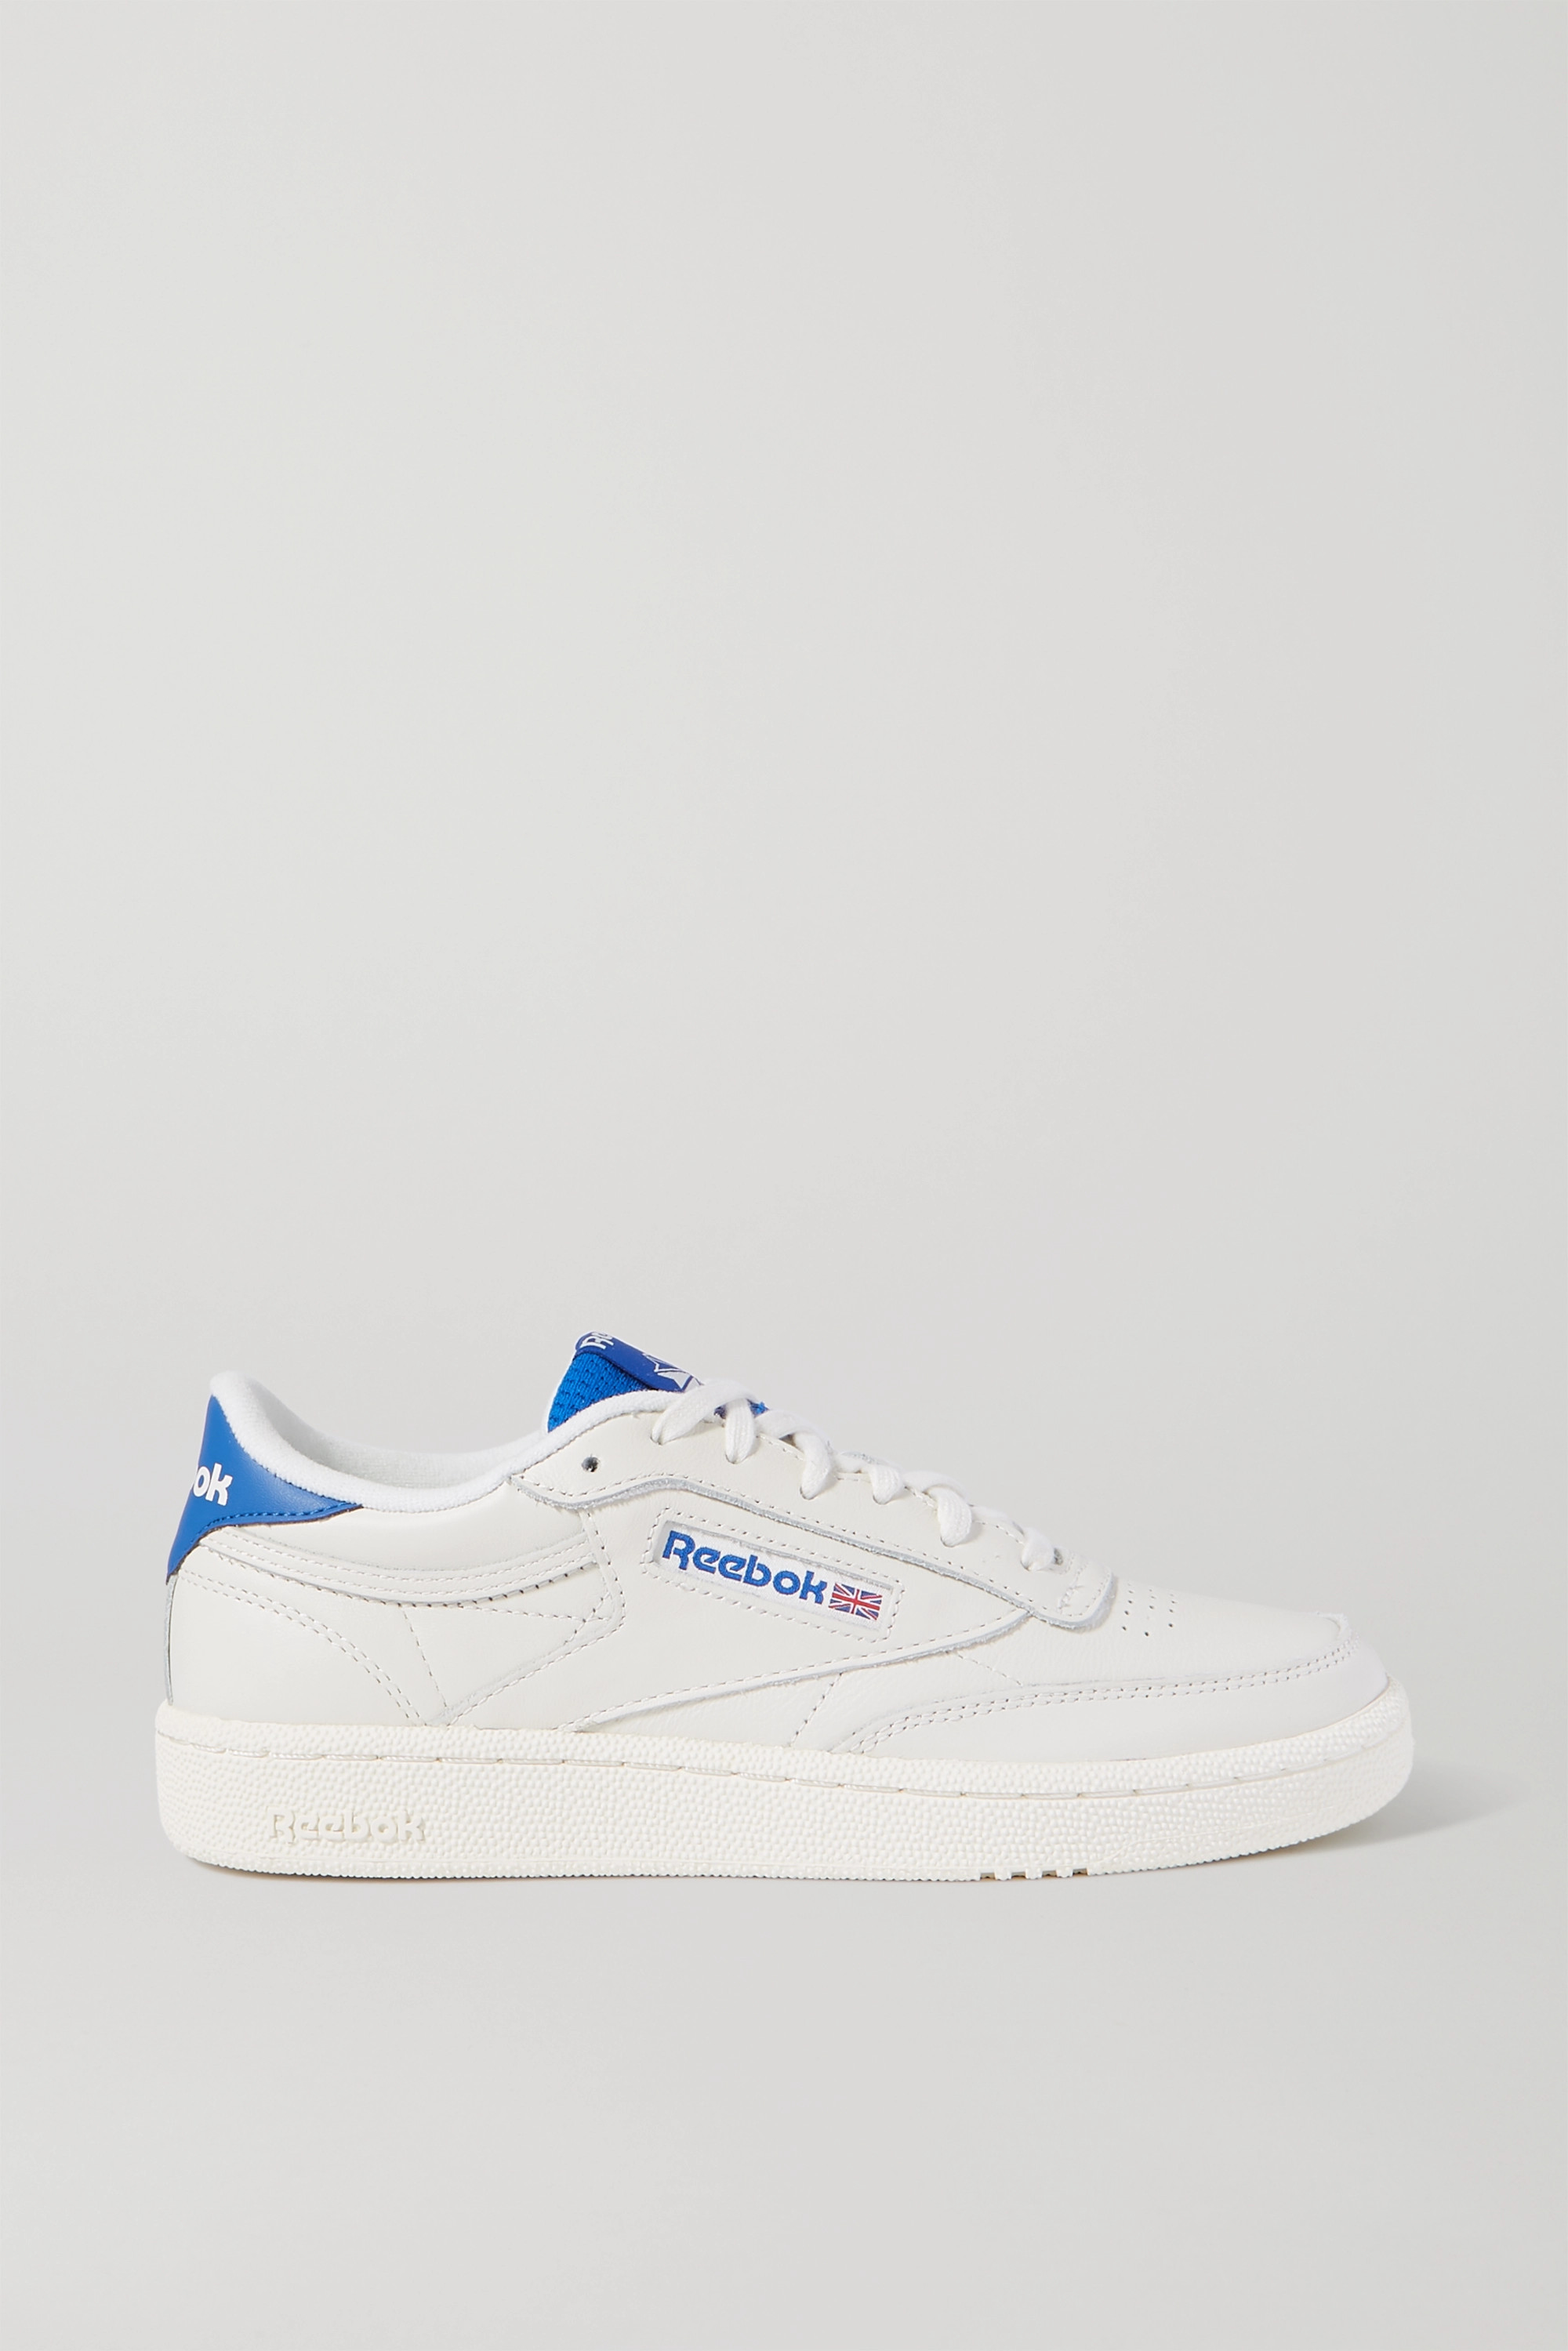 Off-white Club C 85 two-tone leather